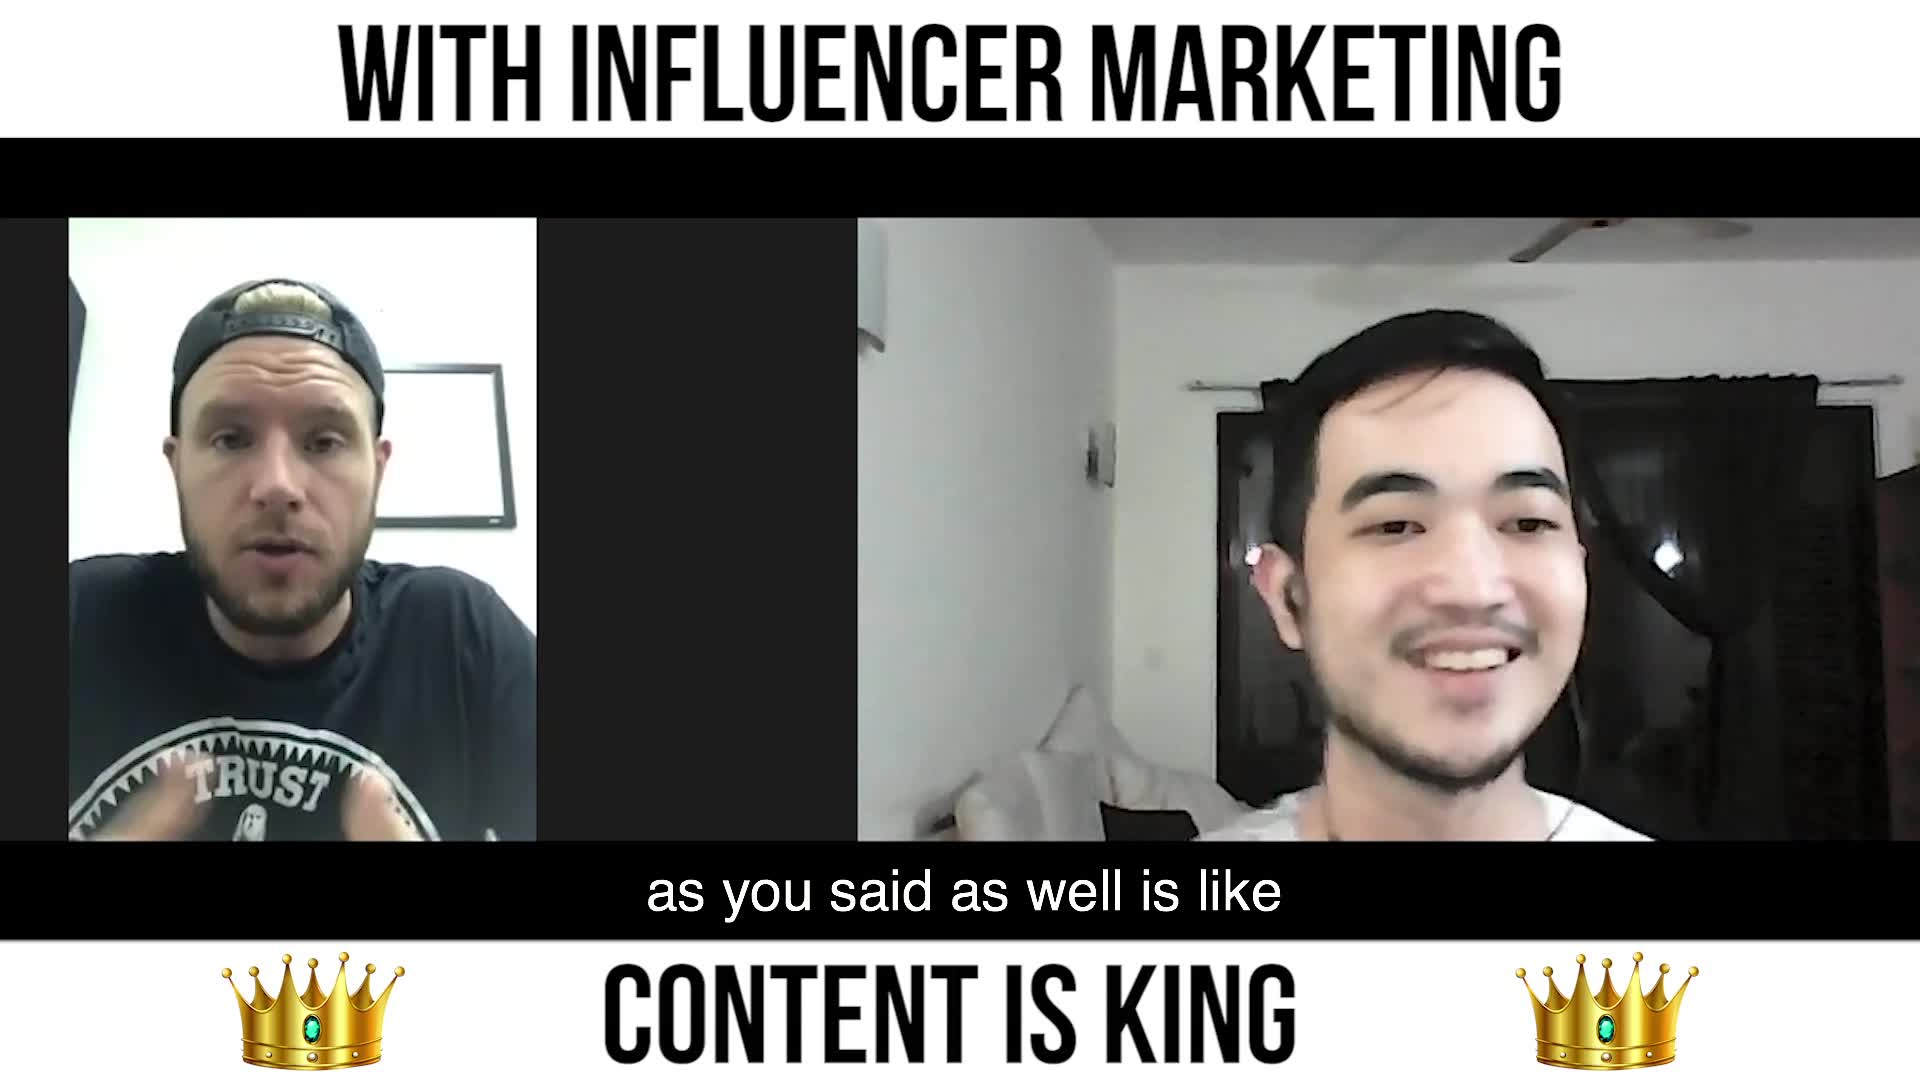 With Influencer Marketing, Content is King 👑